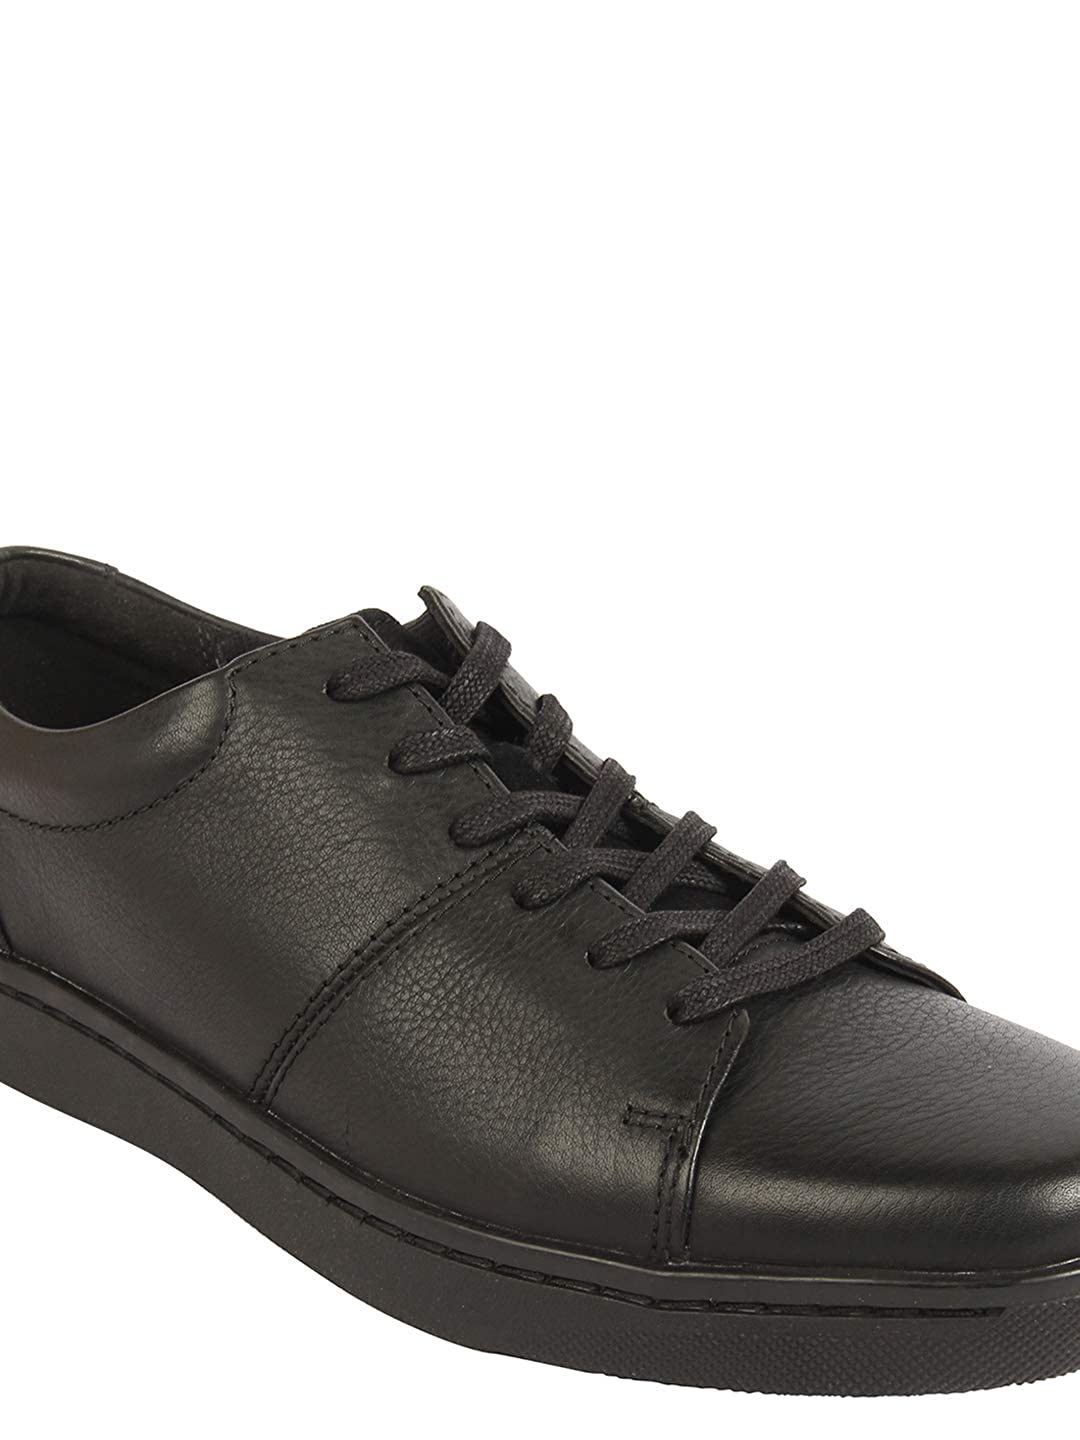 Buy Clarks Solid Black Coloured Leather